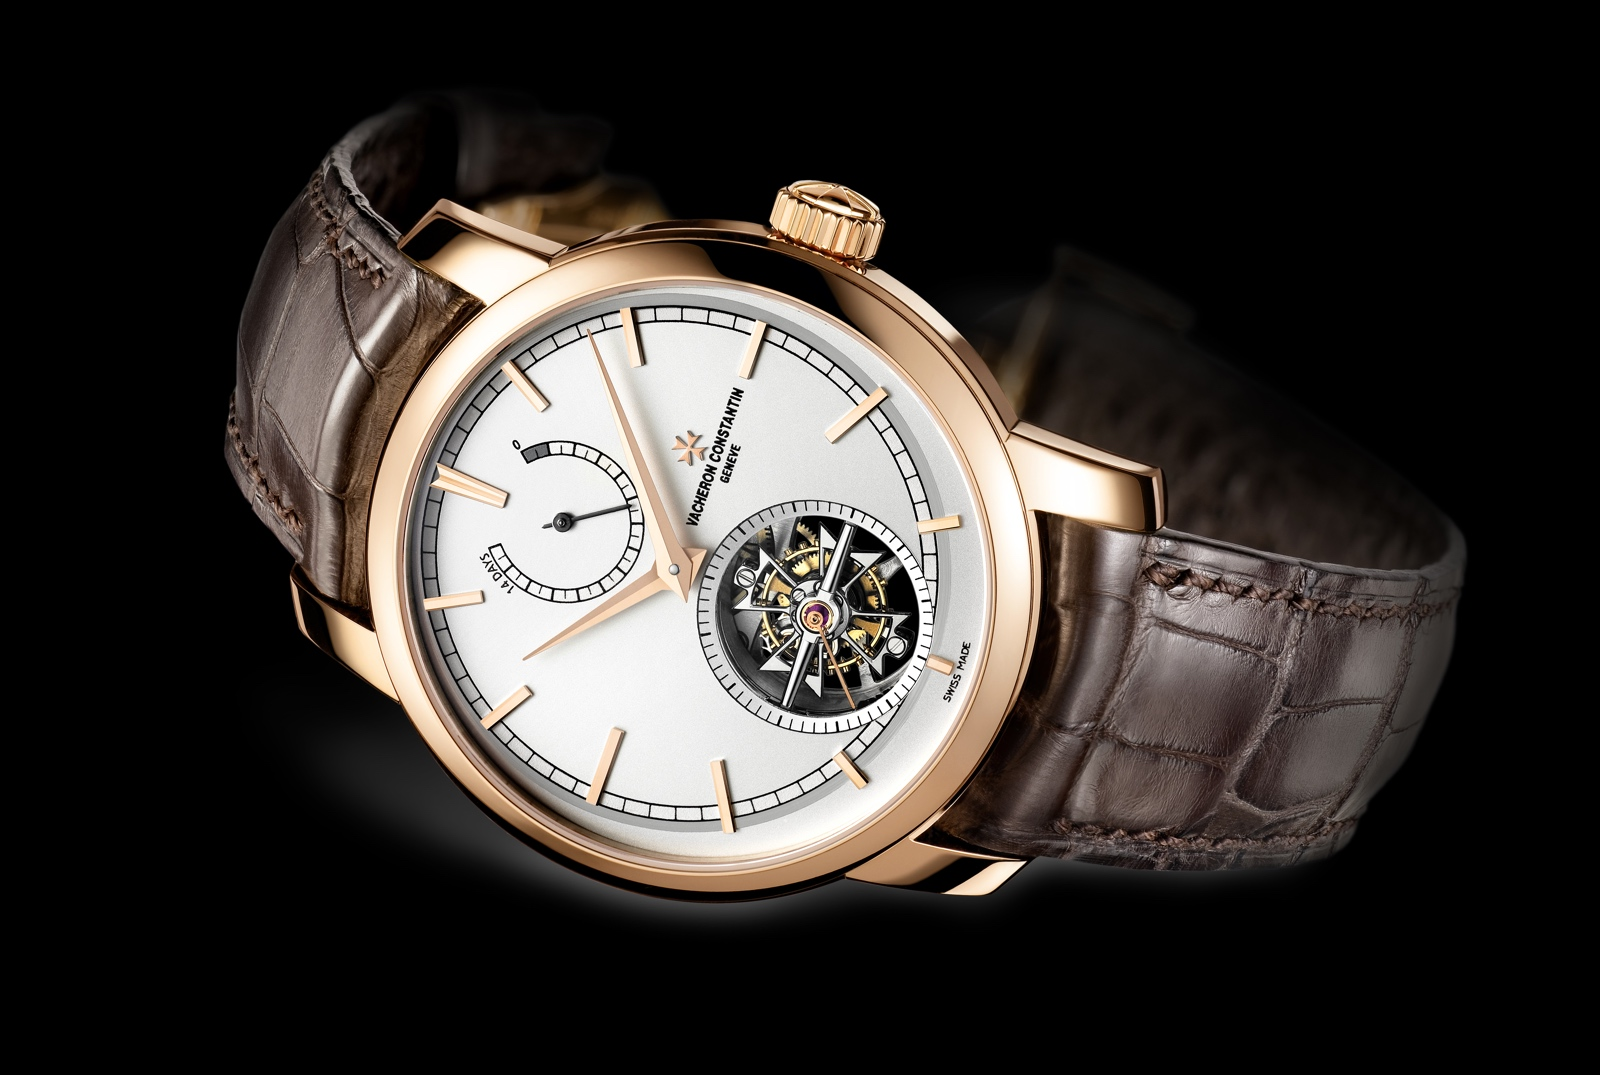 Vacheron Constantin Patrimony Traditionnelle Tourbillon 14 jours